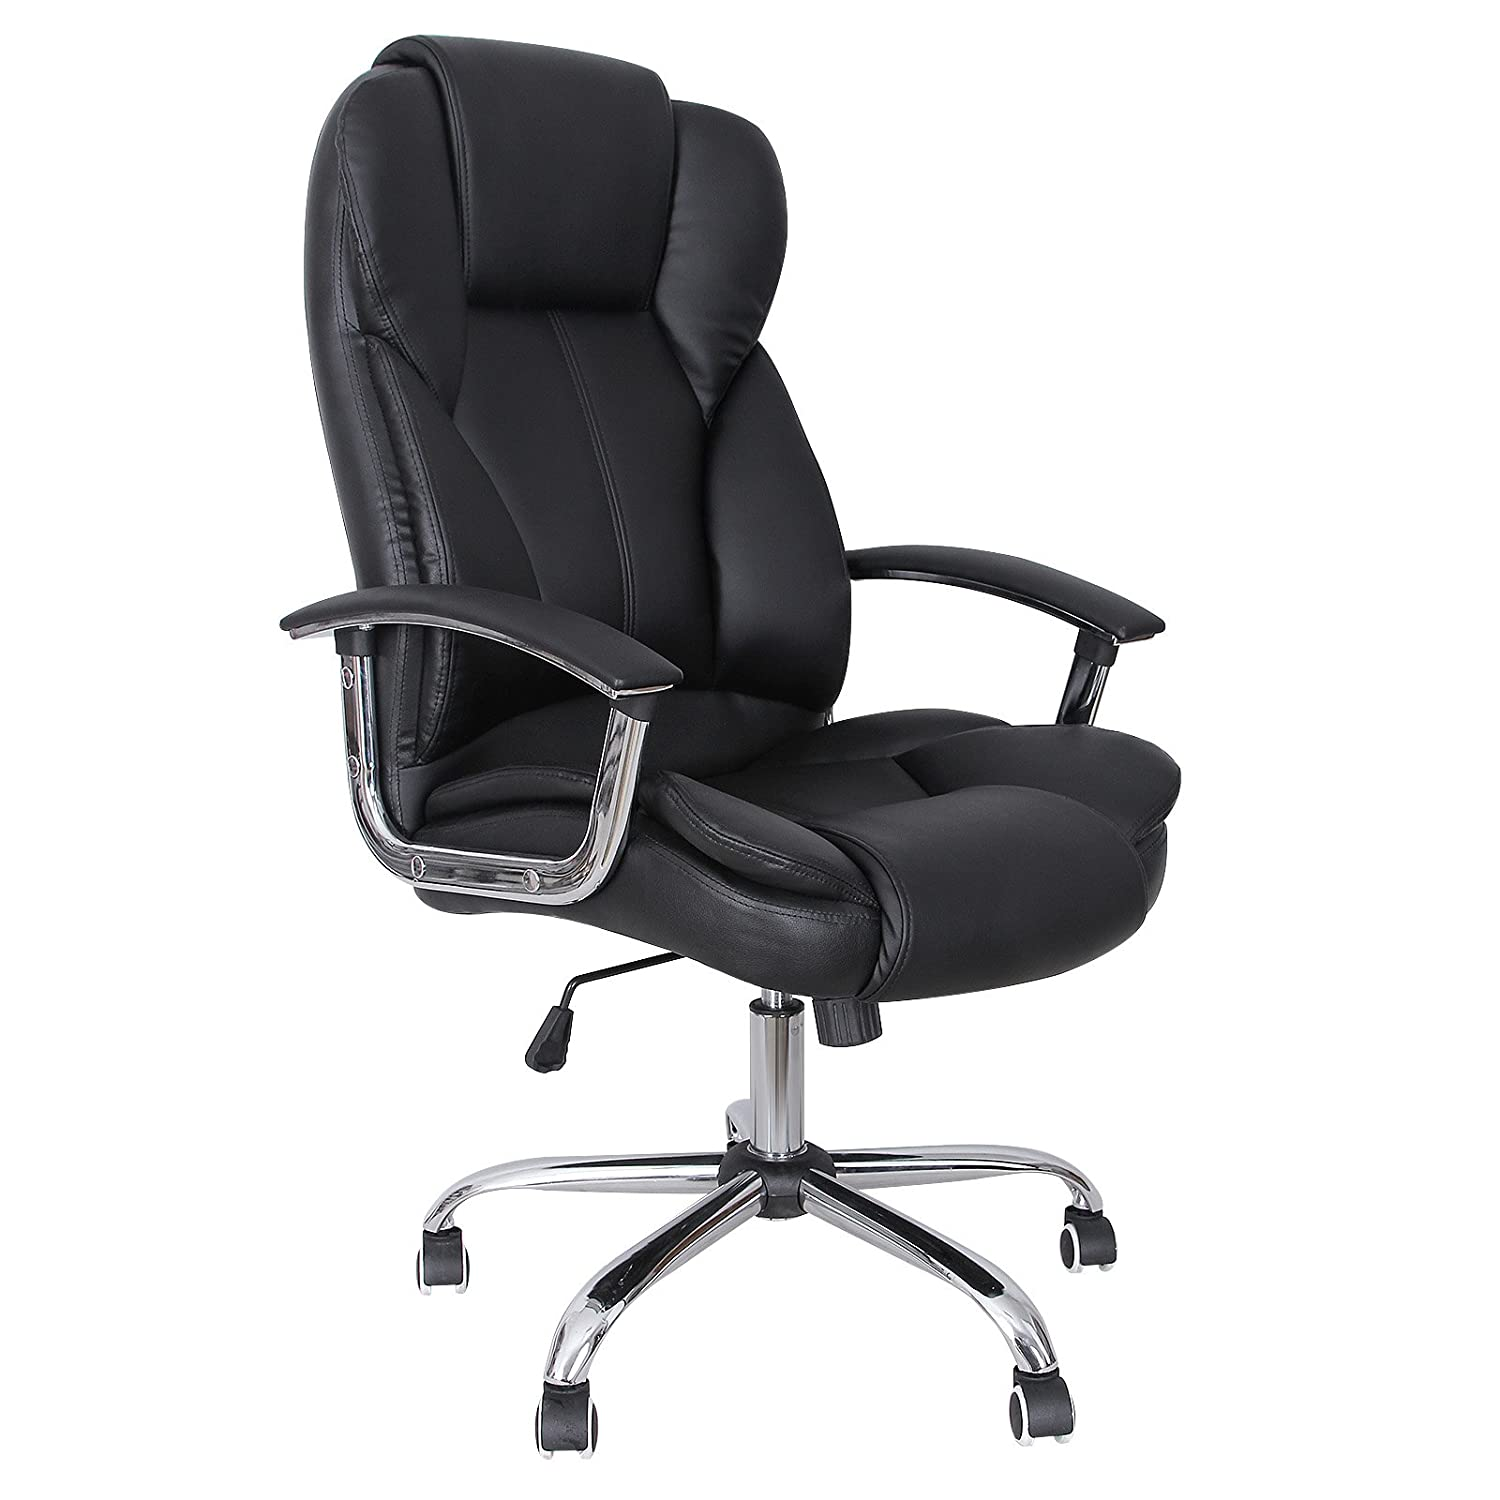 Delicieux Amazon.com: SONGMICS Office Chair With High Back Large Seat And Tilt  Function Executive Swivel Computer Chair PU Black UOBG57B: Kitchen U0026 Dining